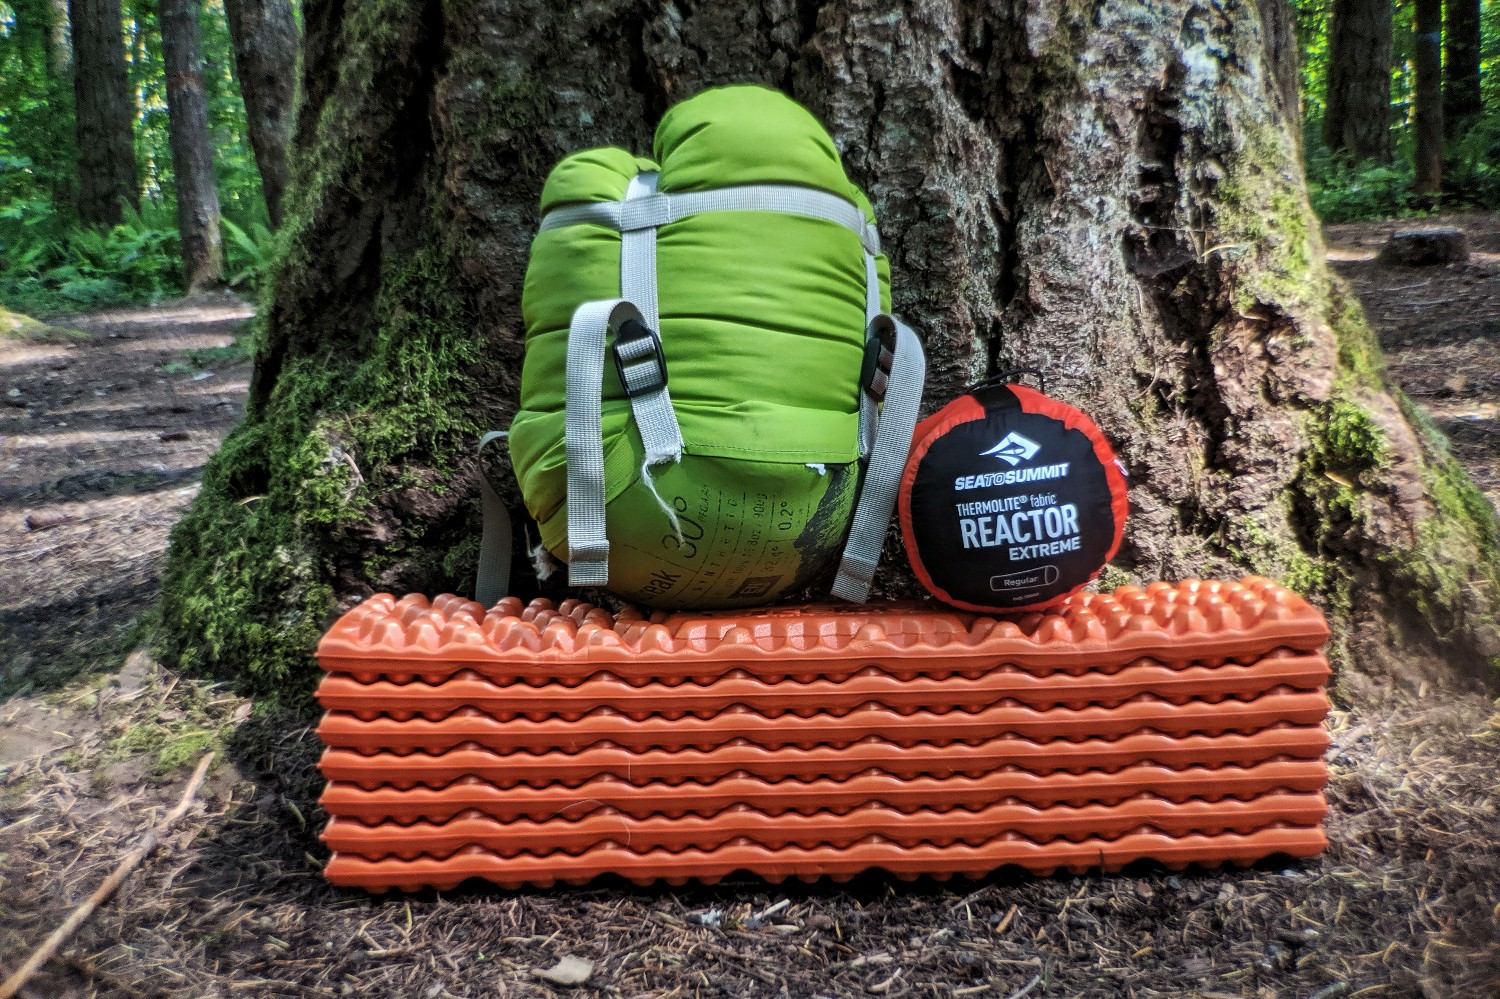 The  Reactor Extreme  liner can add significant warmth to your sleeping bag on cold nights.